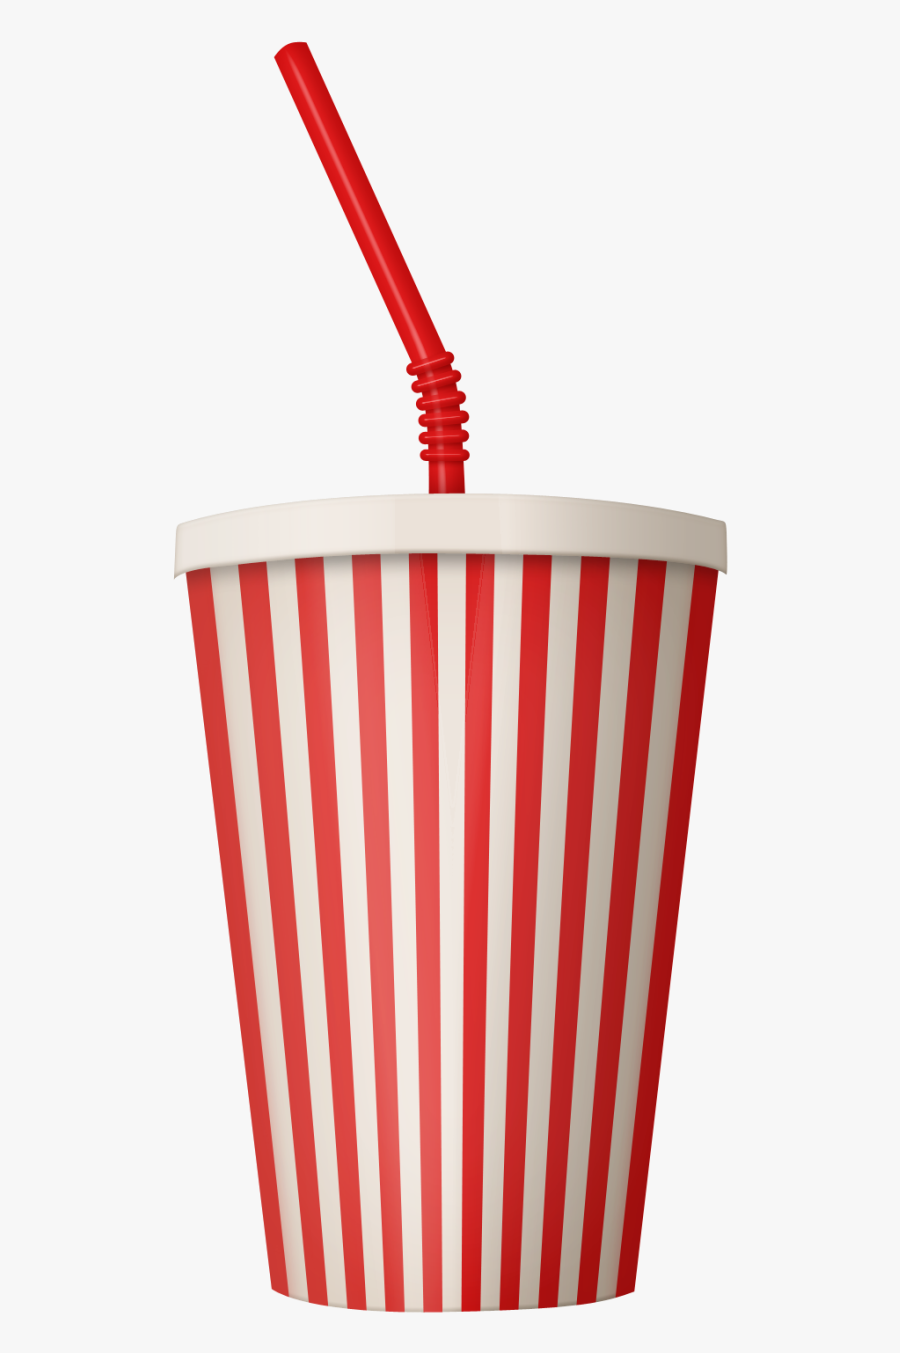 Drink In A Cup Png, Transparent Clipart